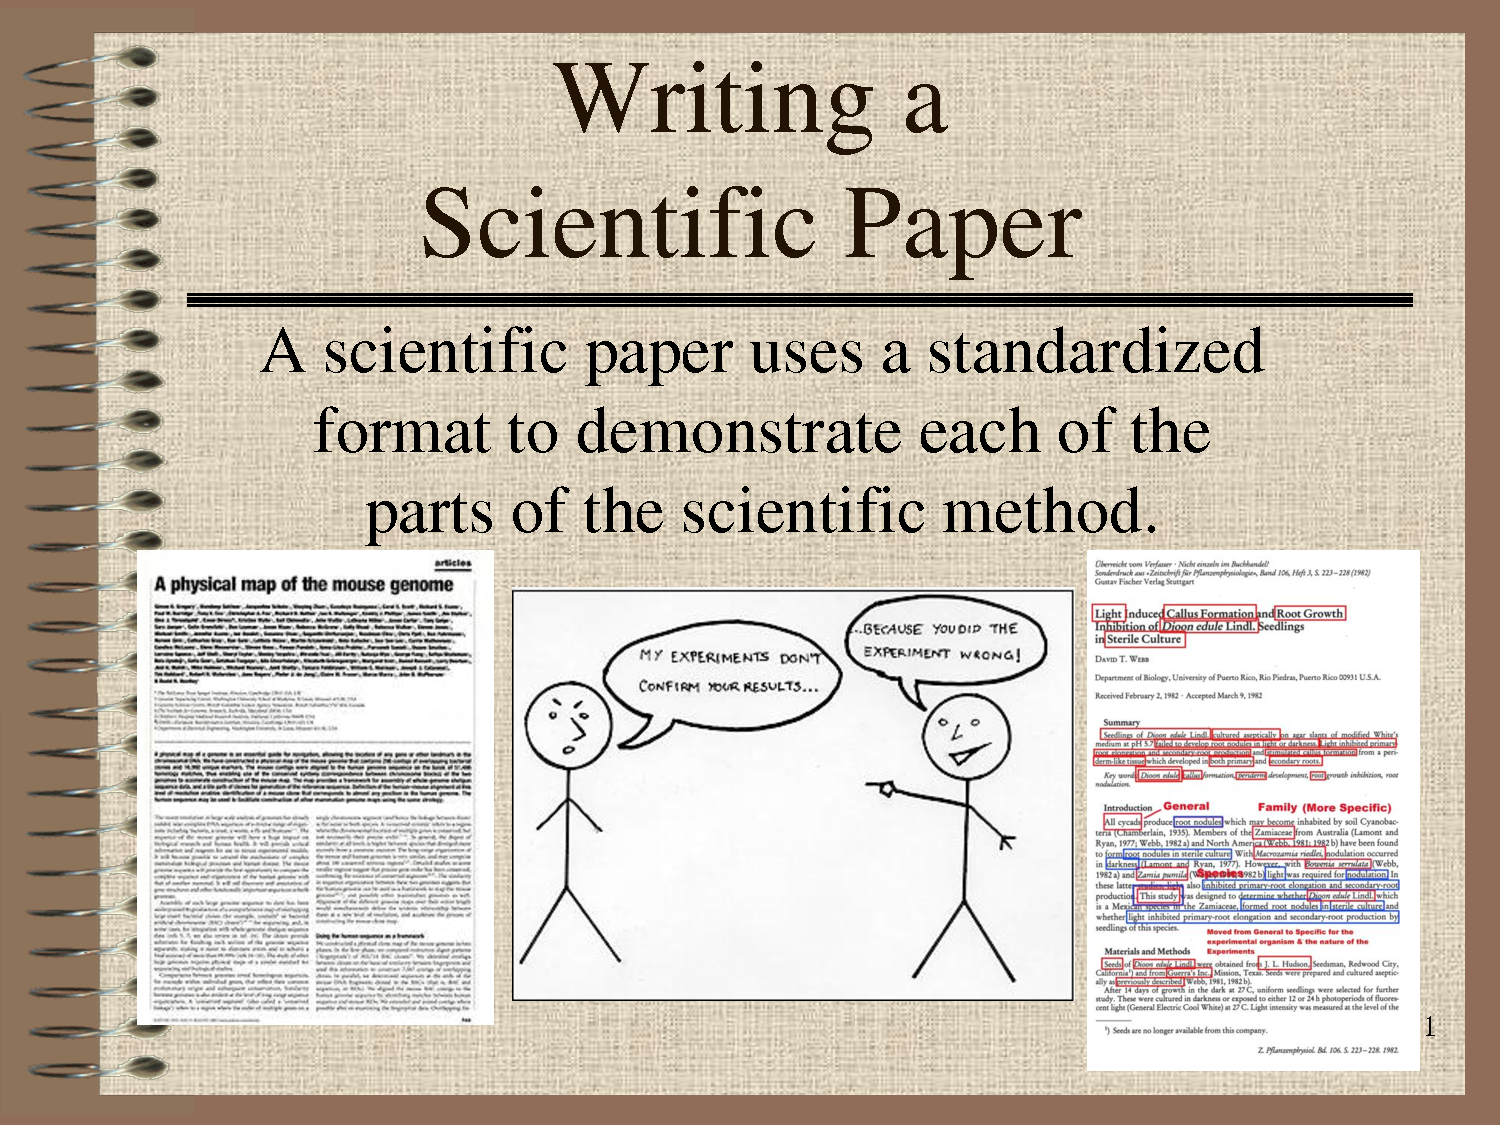 pay for scientific papers top rated writing service pay for scientific papers